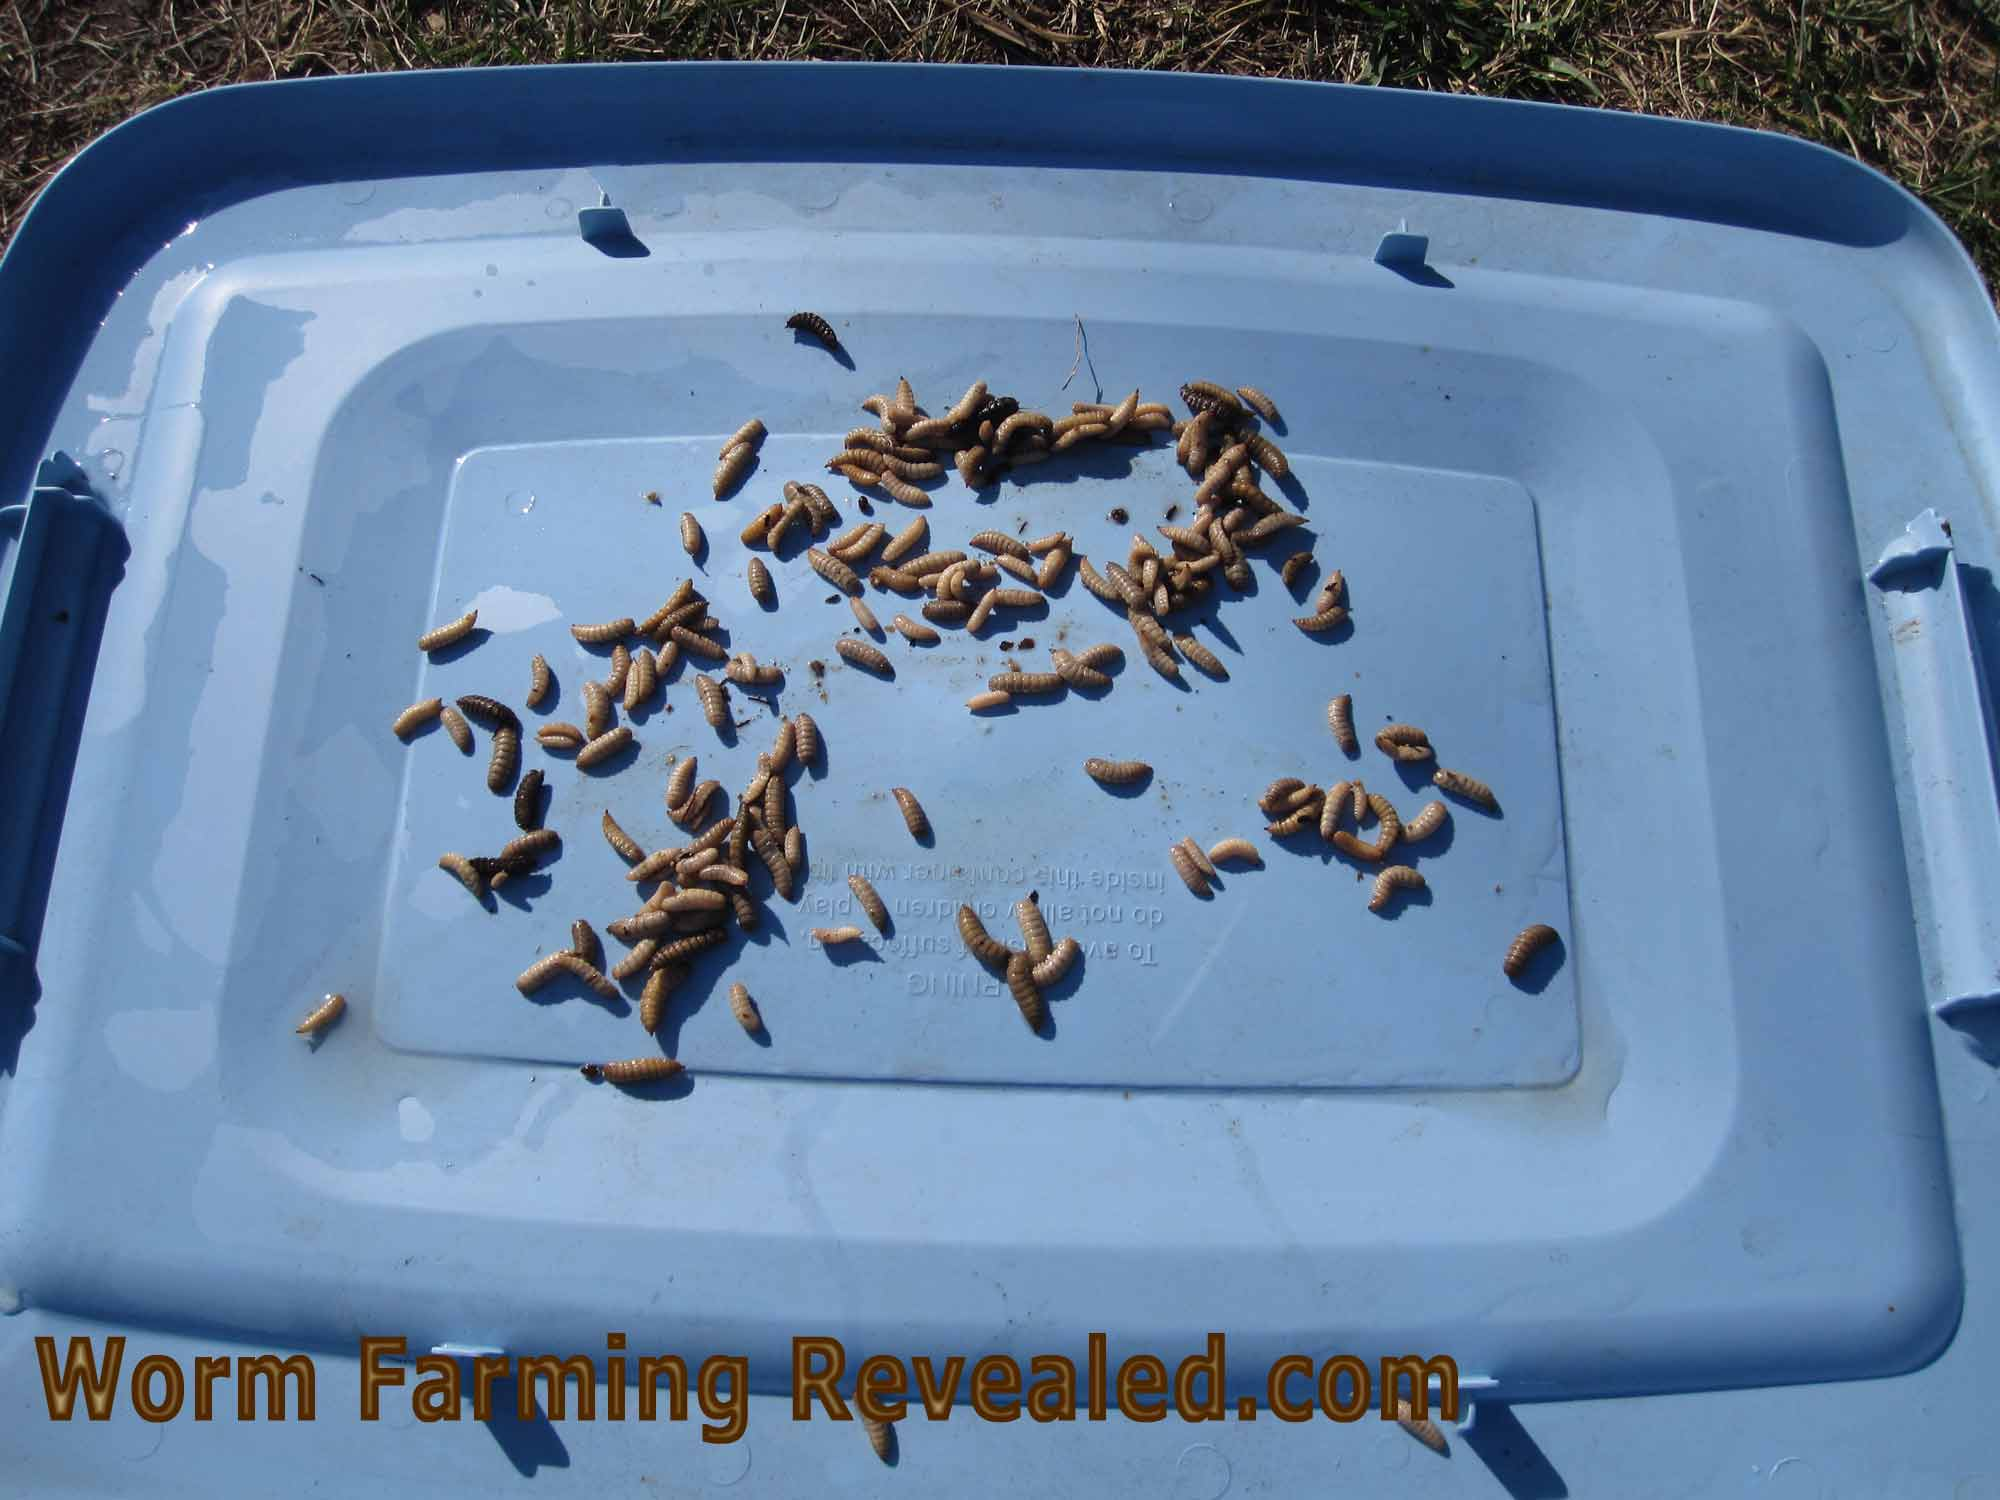 Dozens of Single Black soldier fly larvae